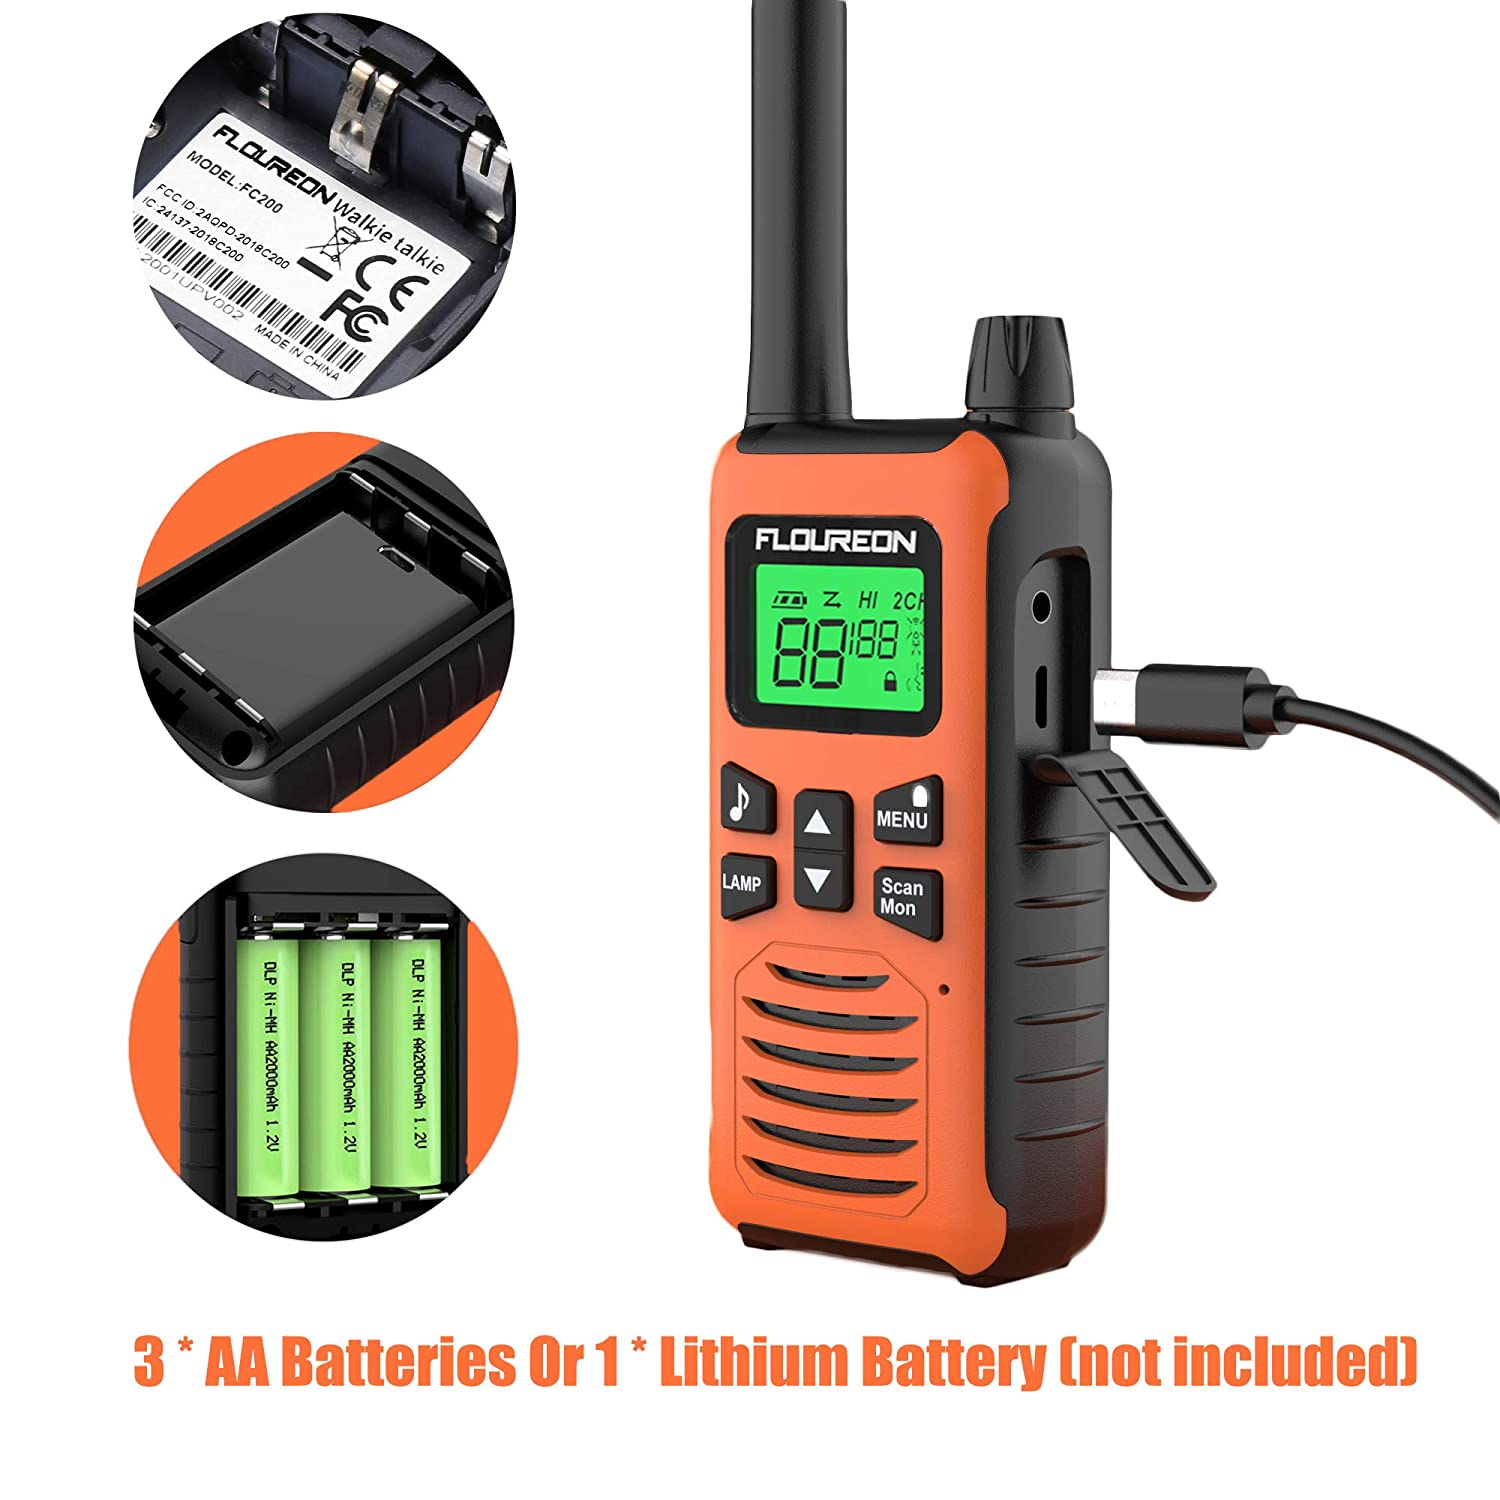 FLOUREON 16 CH Twin Walkie Talkies Interphone 2 Way Radio Rechargable with LCD Display Up to up to 5KM for Field Survival Biking Hiking Orange